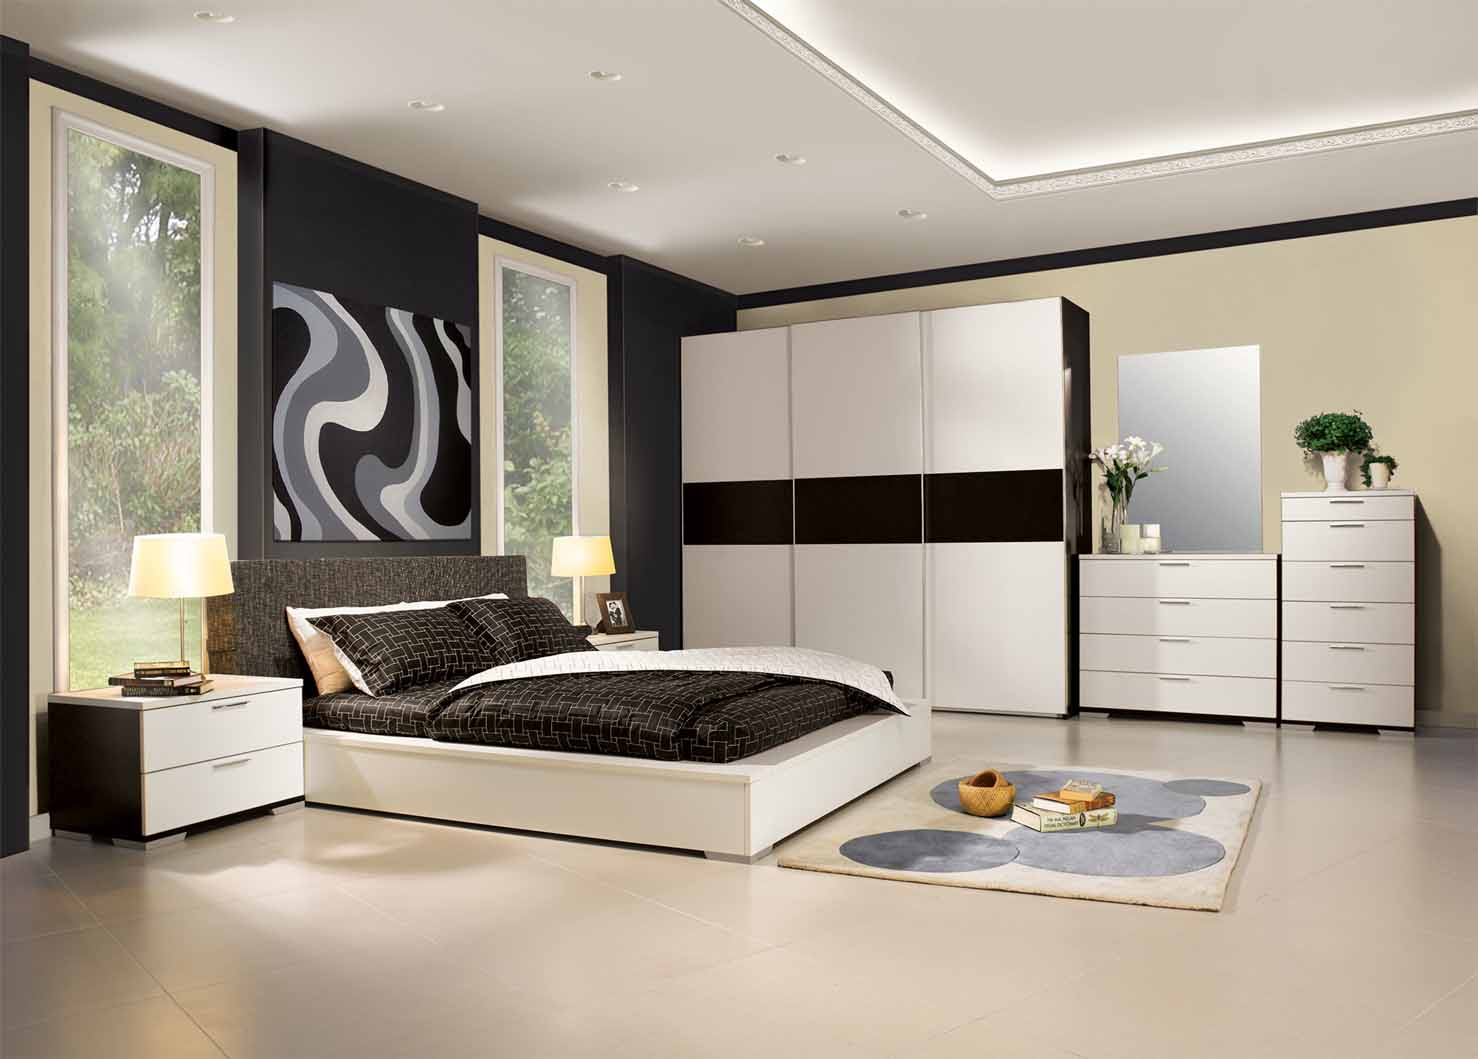 awesome Bedrooms ideas pictures 2014 Decorating Bedrooms ...